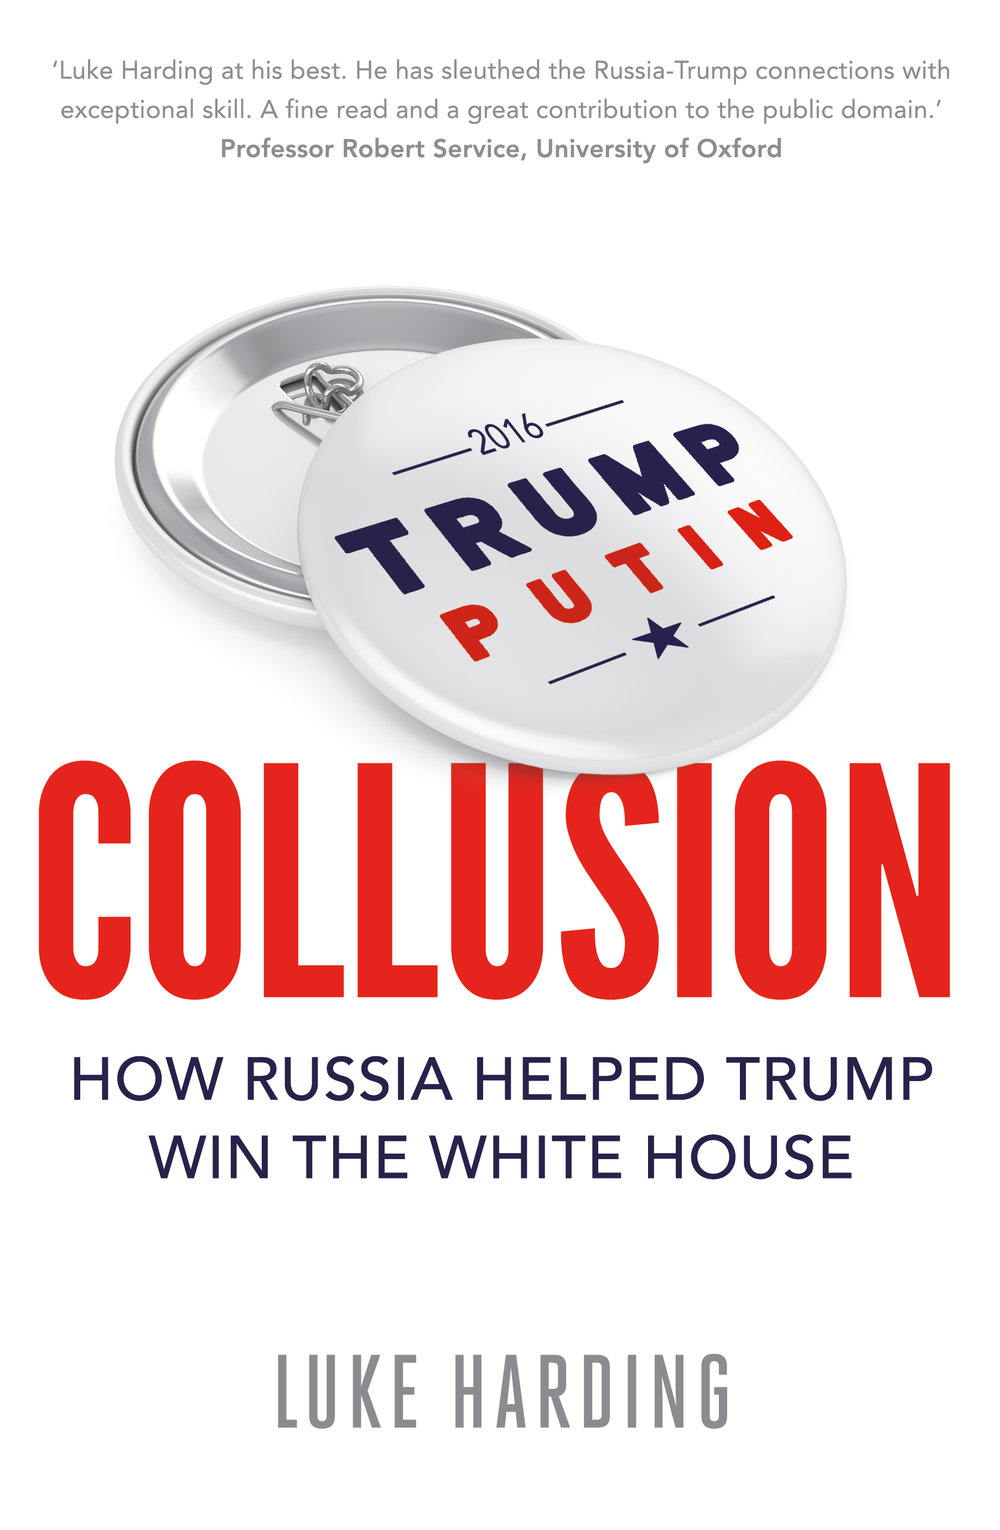 Image result for Collusion: How Russia Helped Trump to Win the White House by Luke Harding